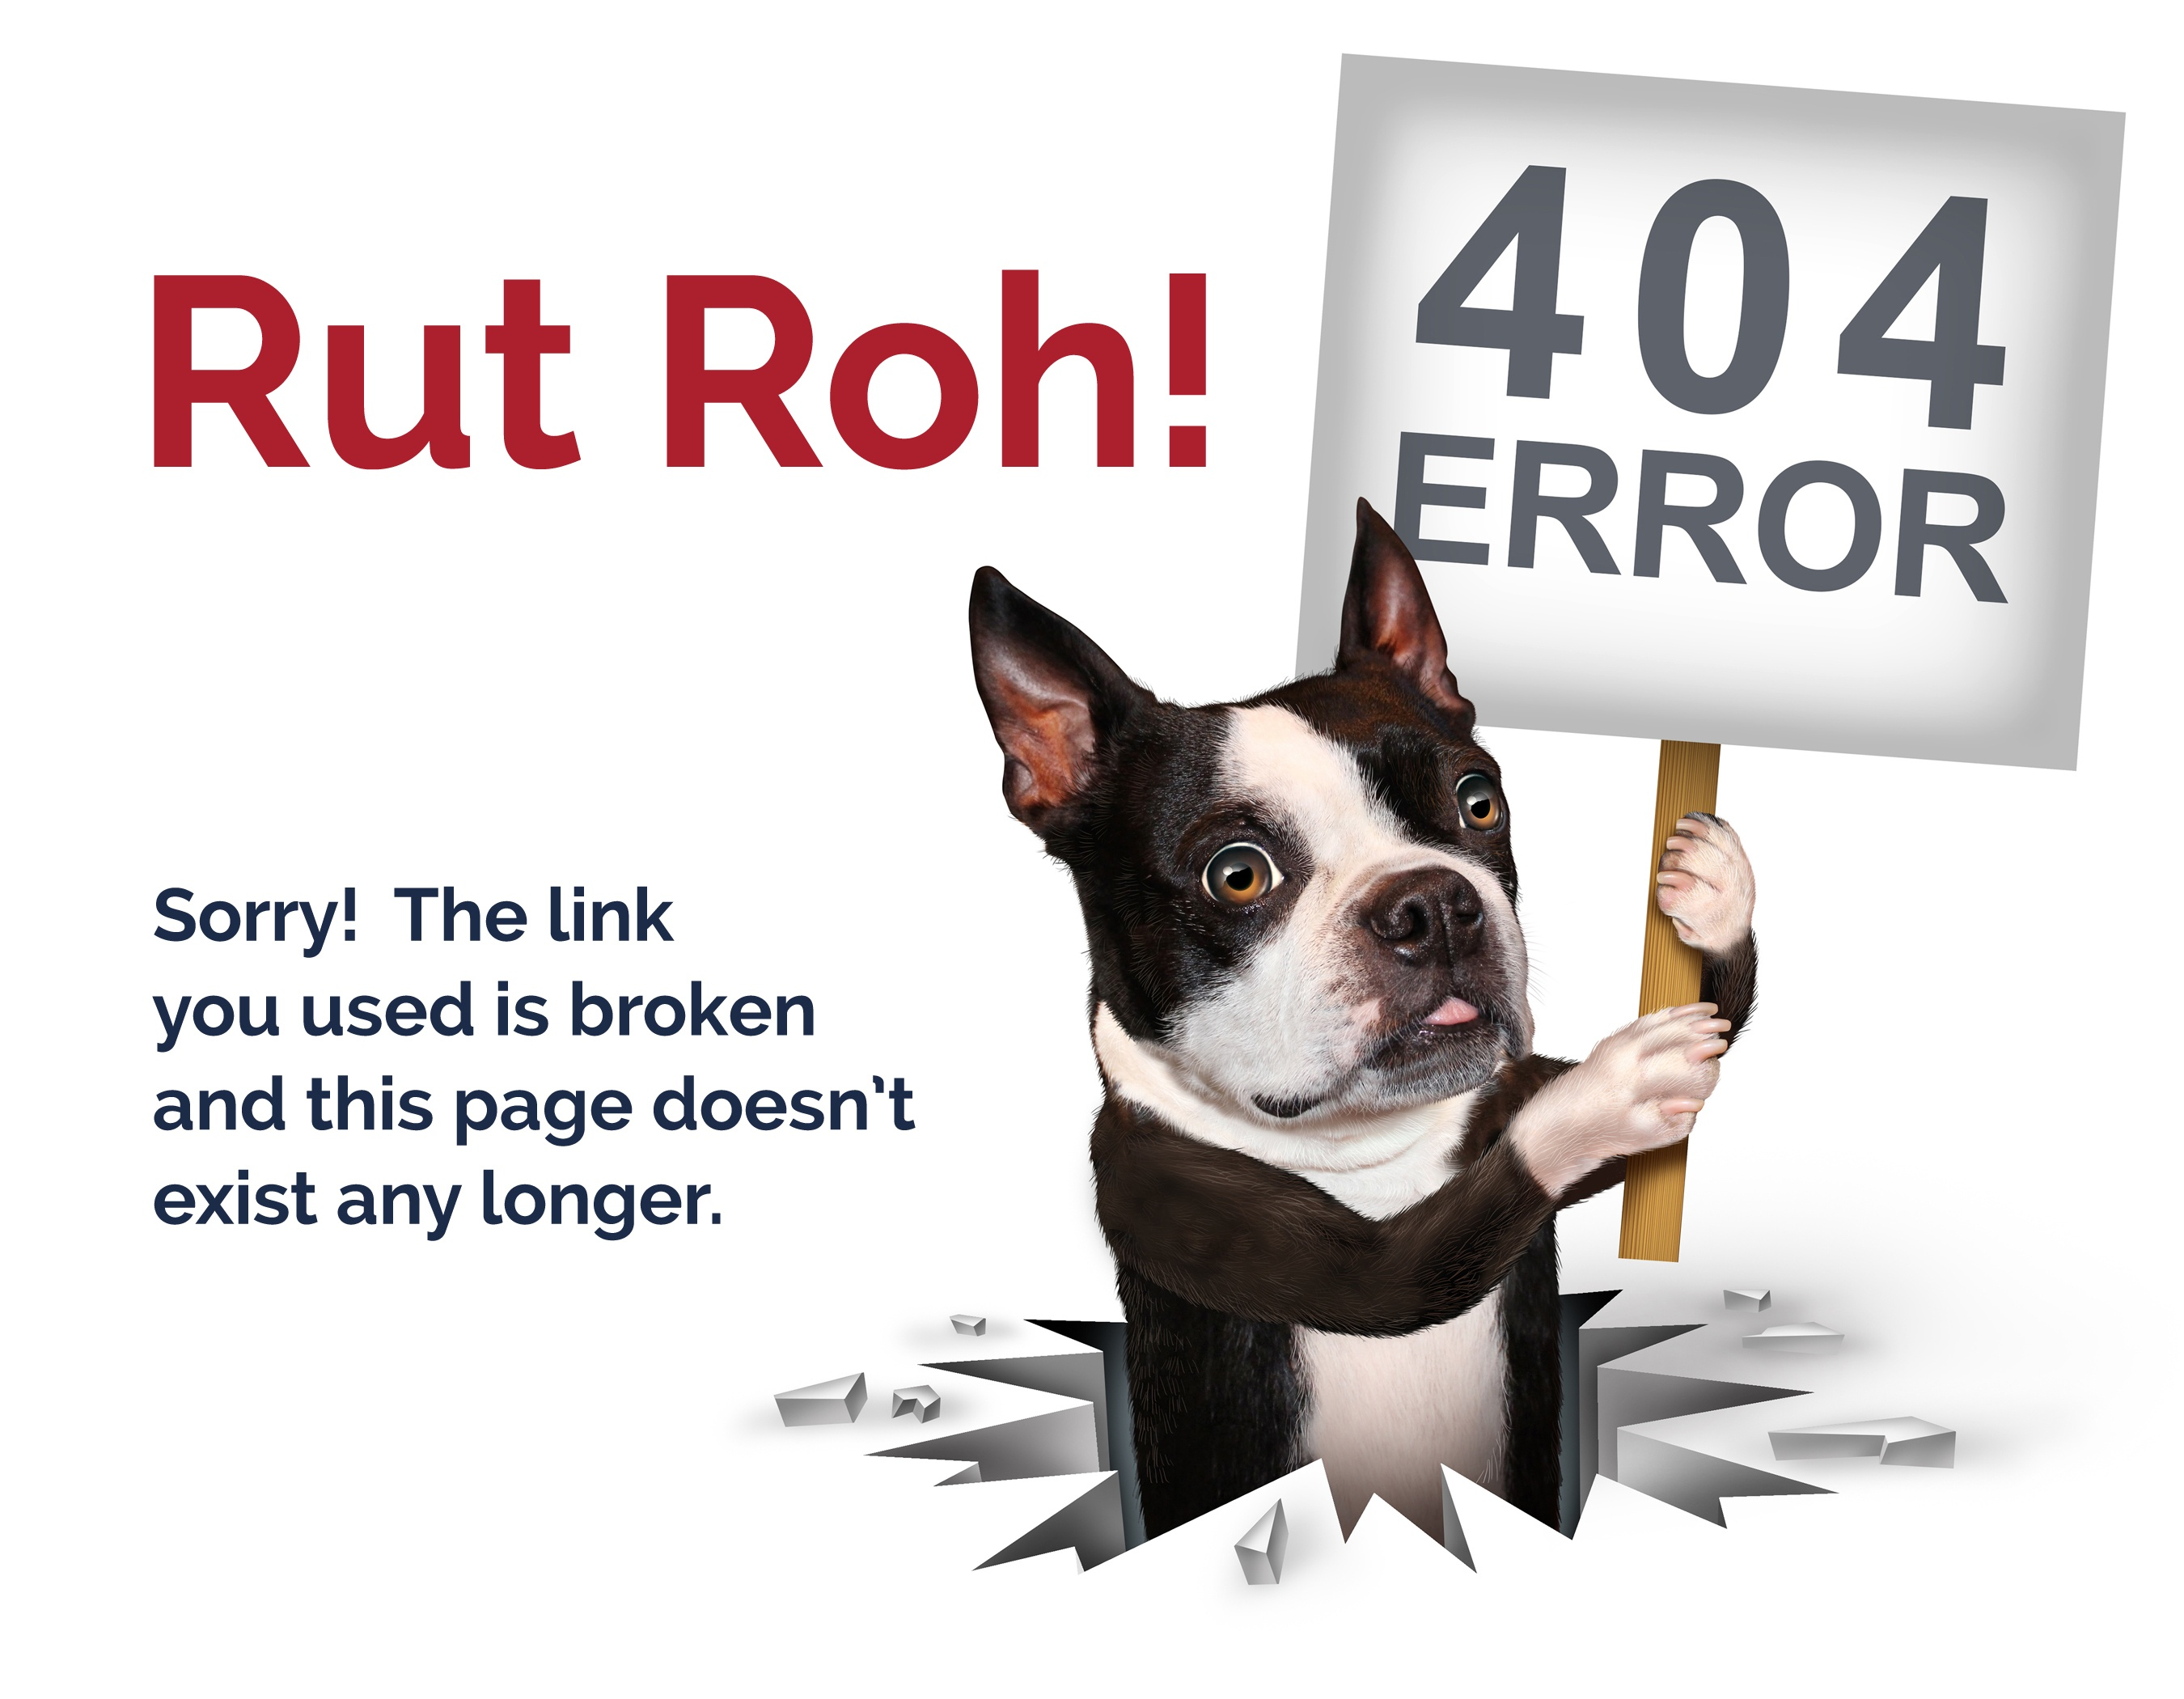 404errorpage_dog2.jpg